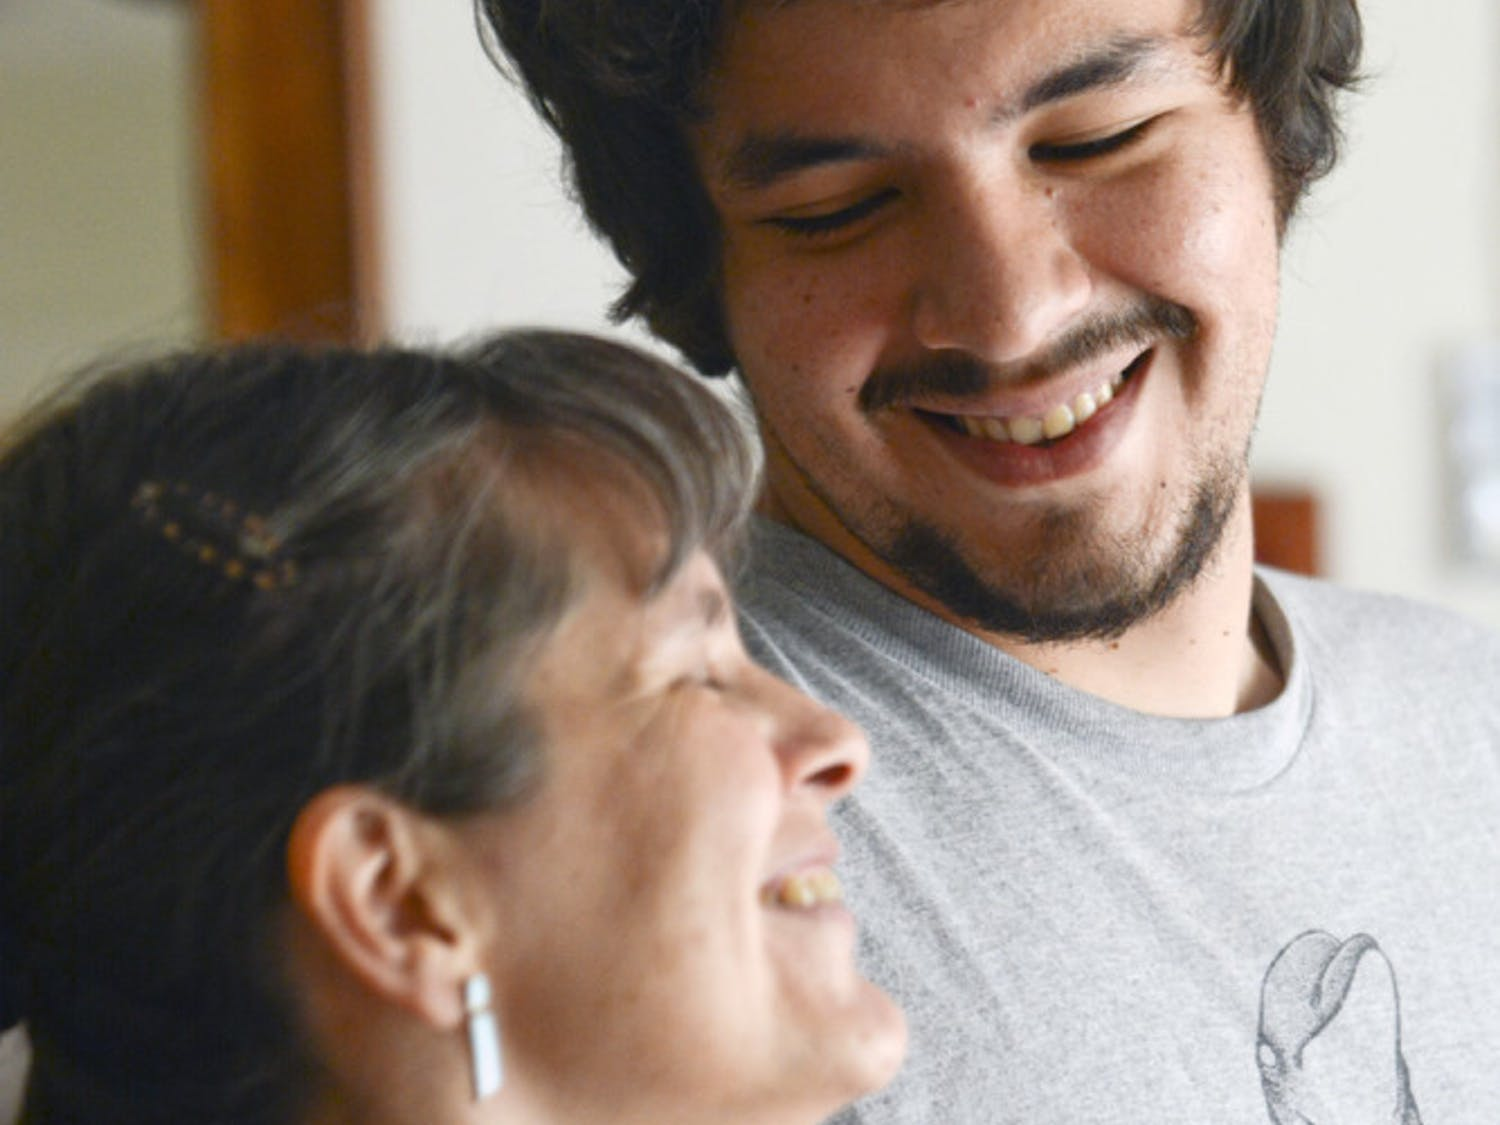 Claudia Castagliola, 45, laughs with her eldest son, Cristobal Gonzalez, 23, in her home's living room. The two will graduate from a PhD program and a Master's program, respectively, this week.